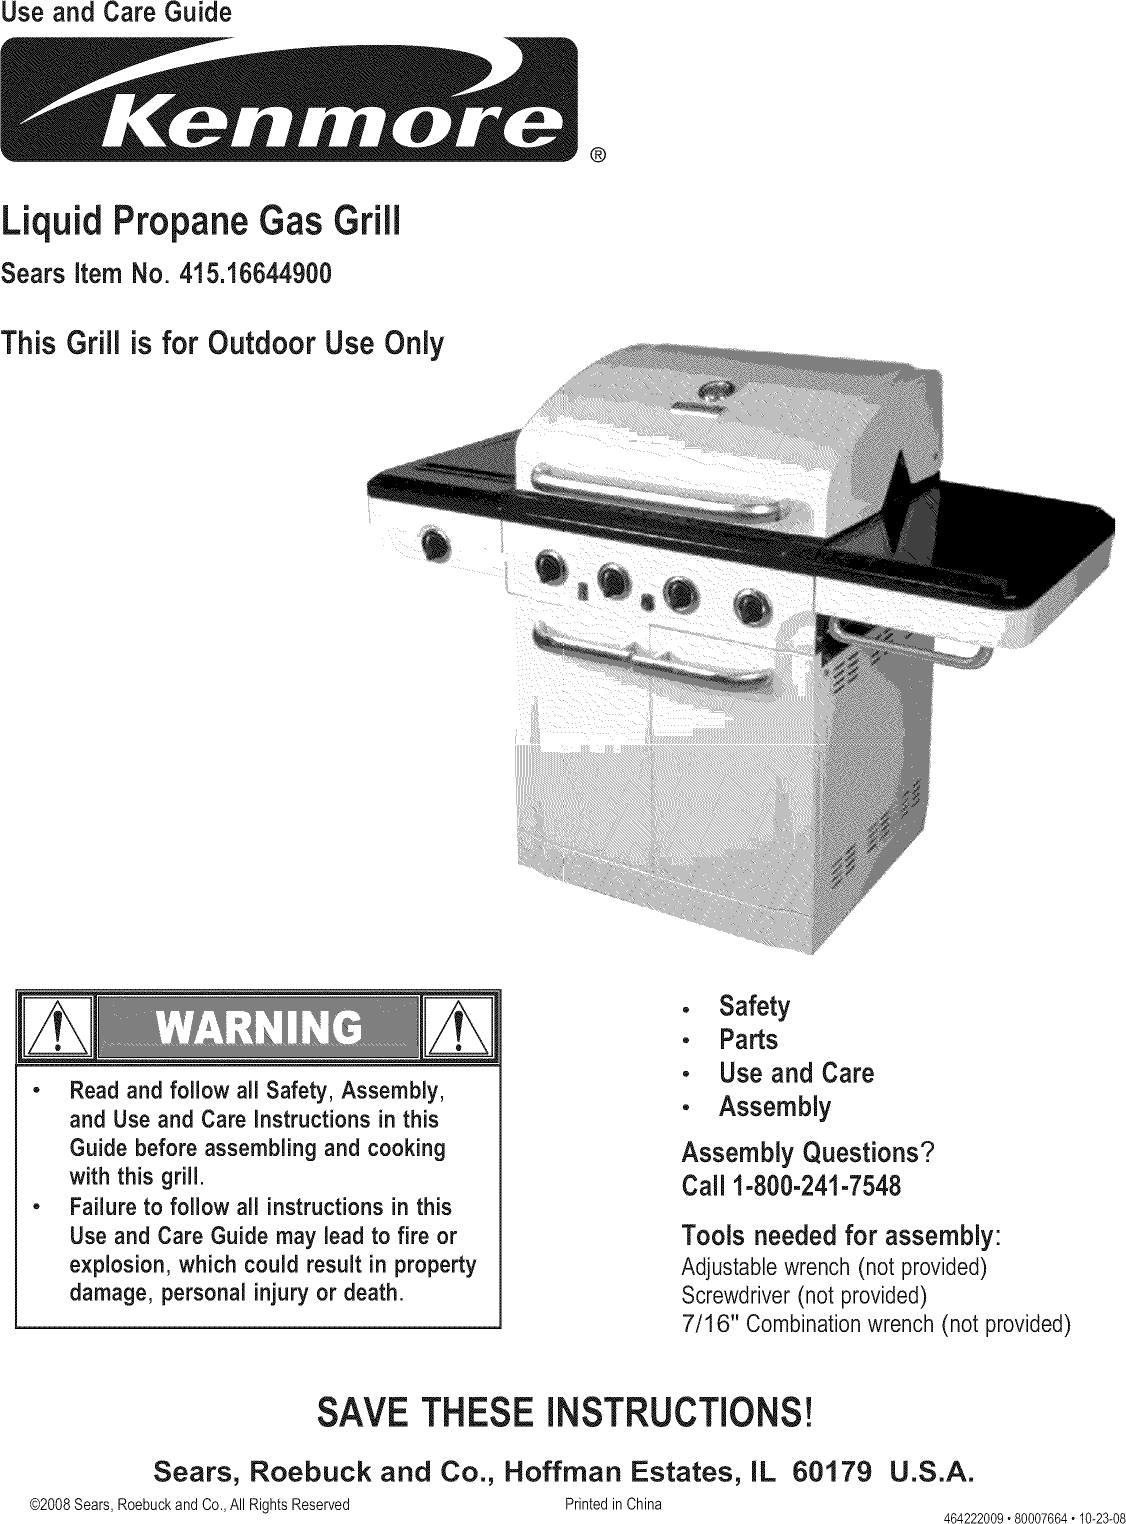 kenmore 41516644900 user manual gas grill manuals and